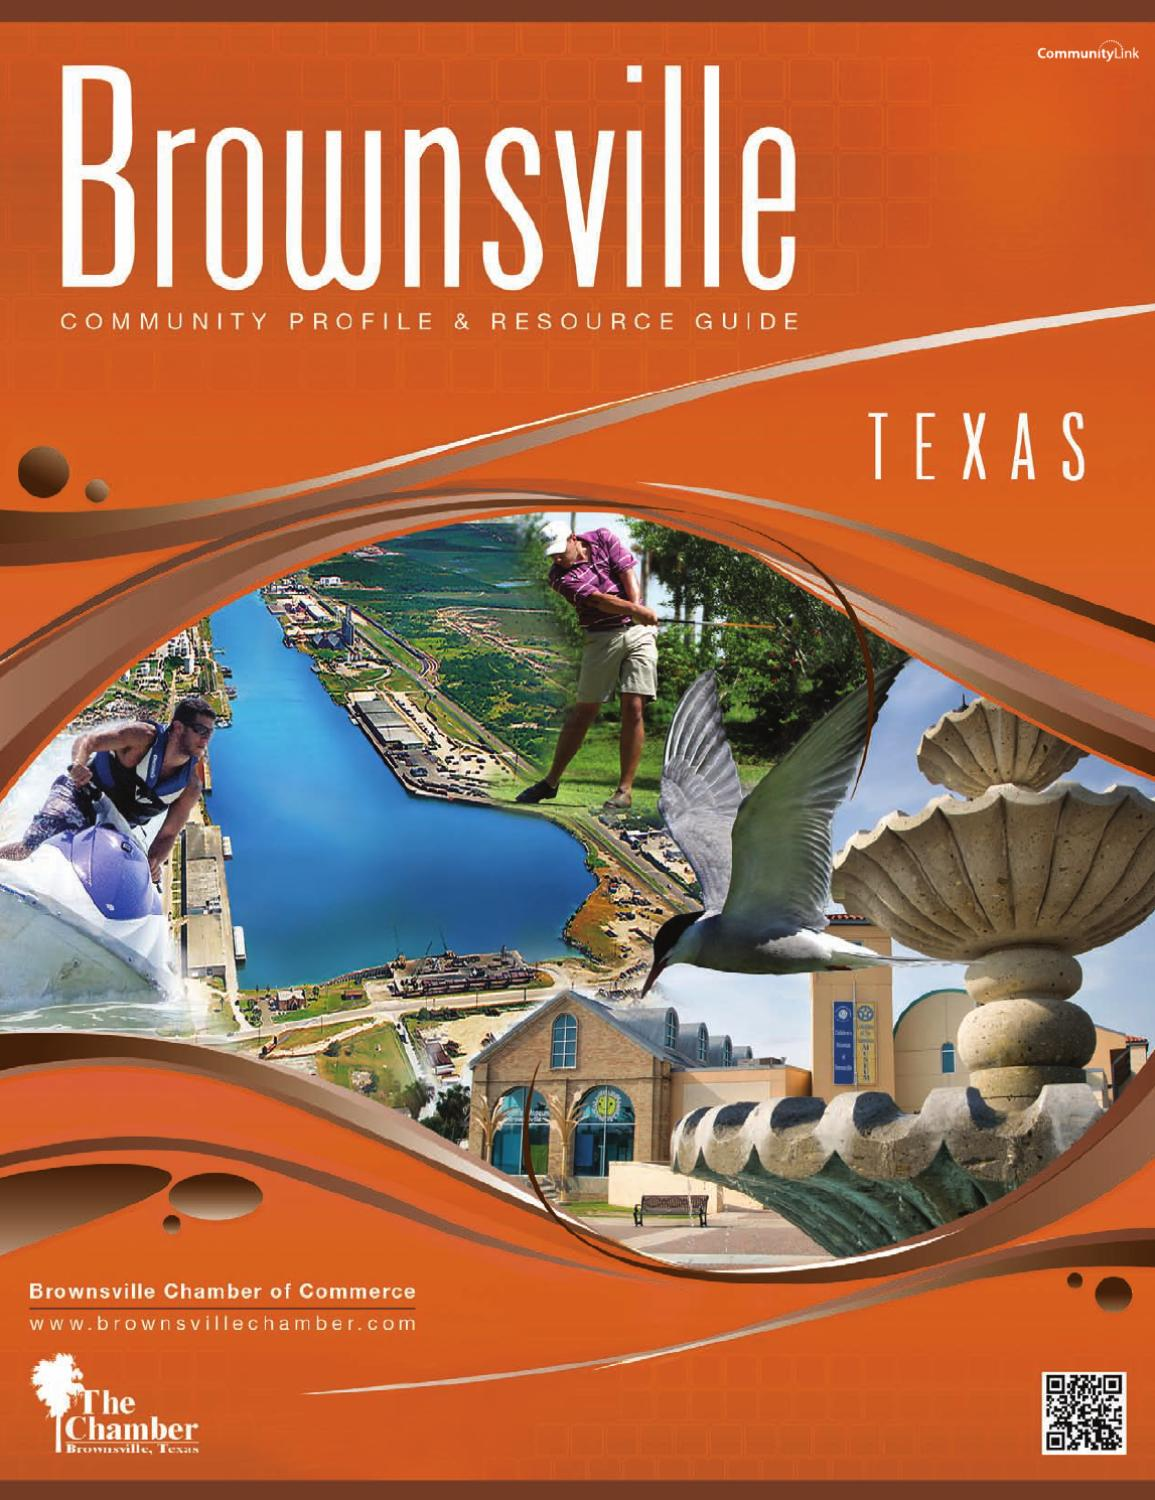 Brownsville, TX 2012 Community Profile and Resource Guide by